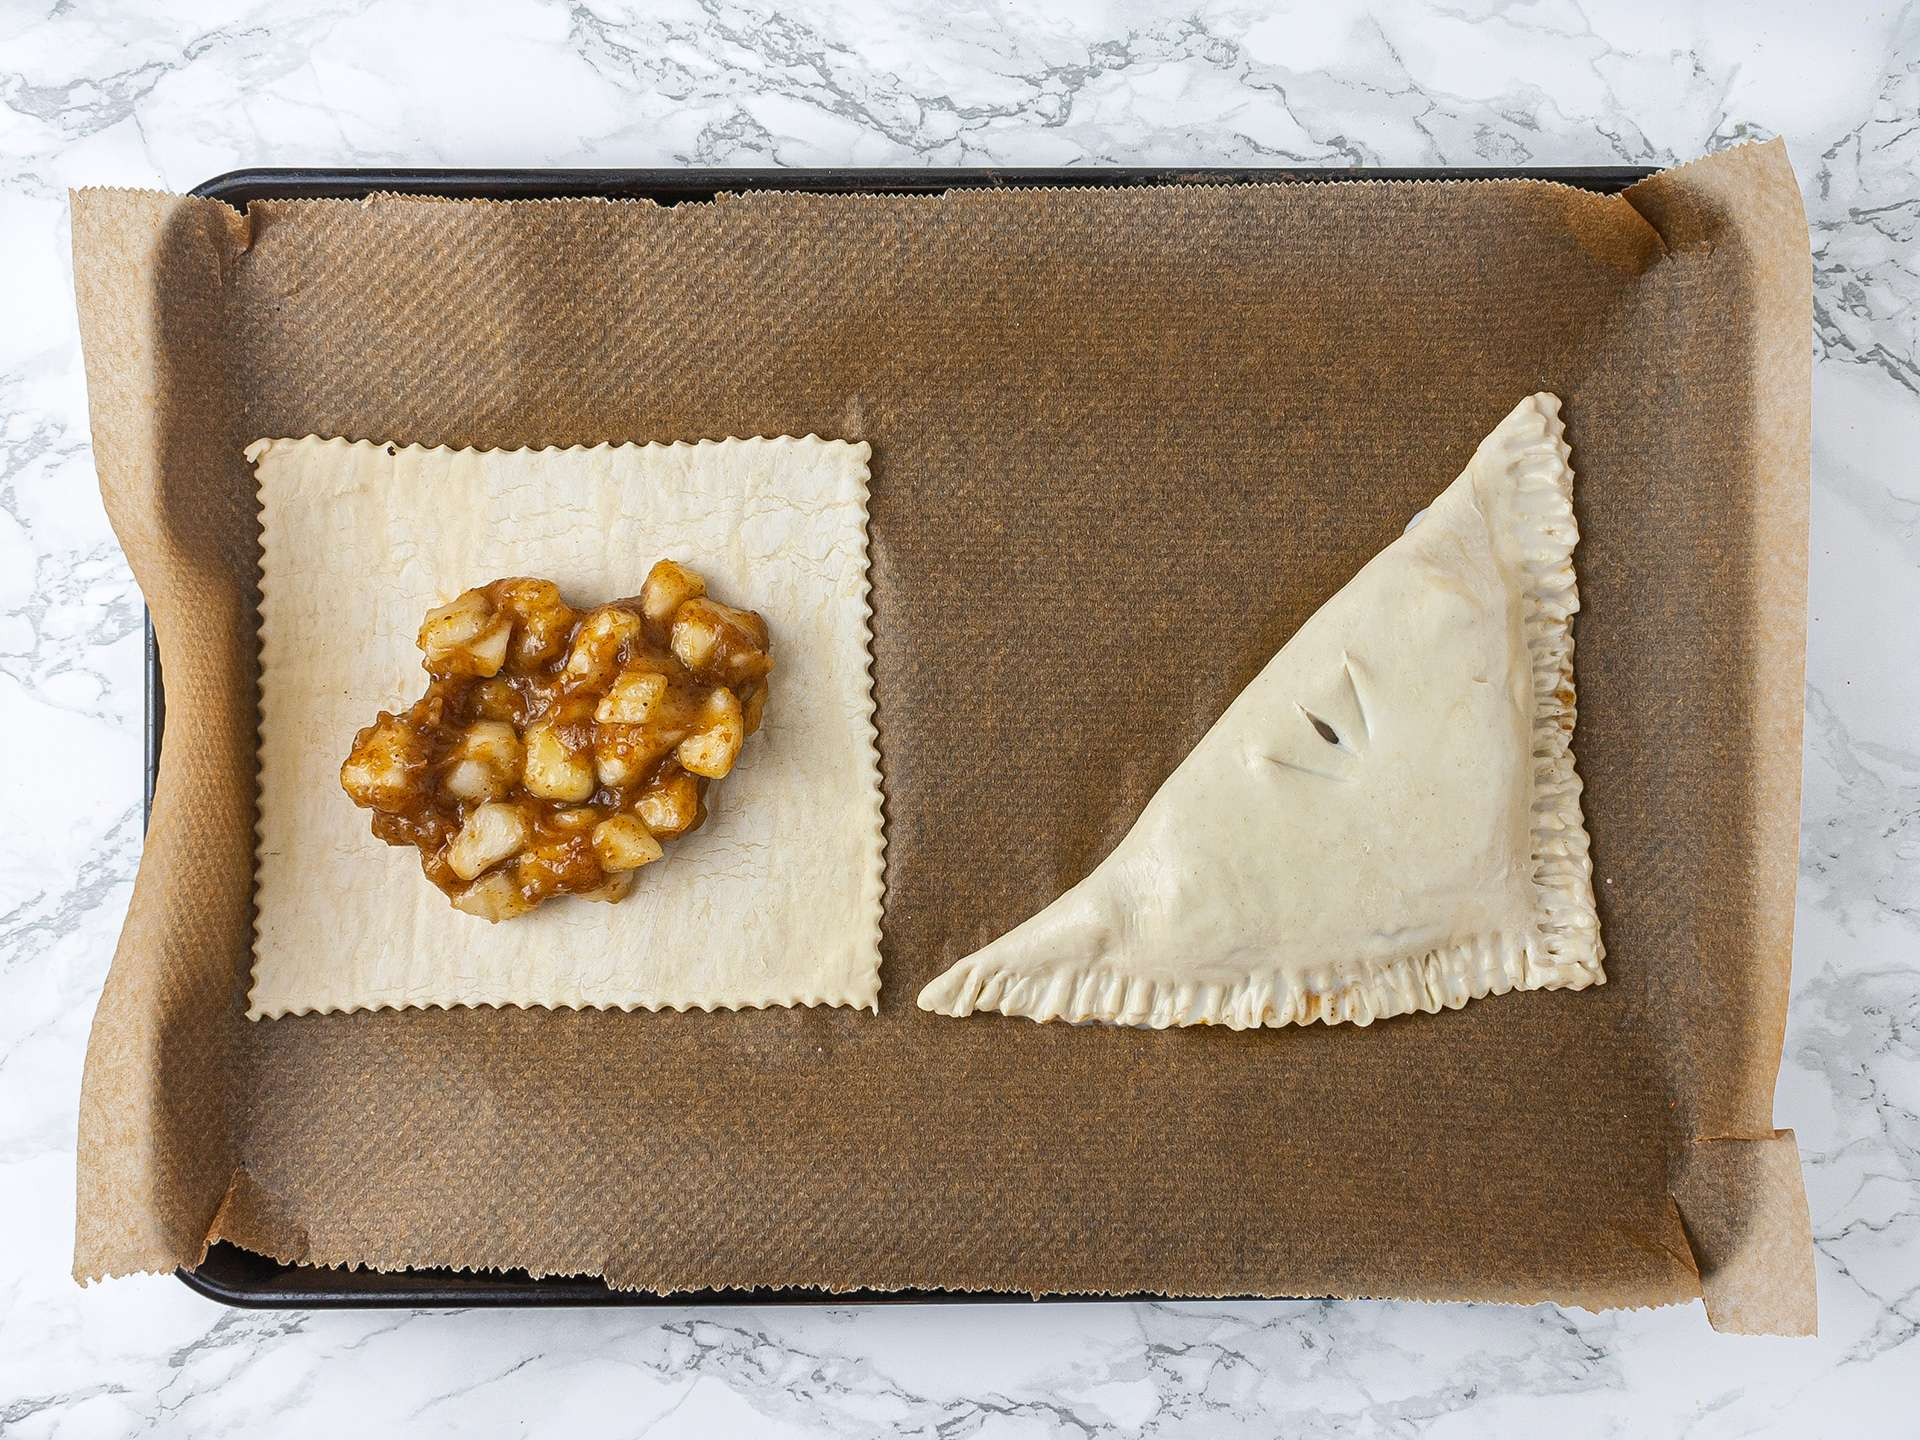 Gluten-free pastry sheets with pear and dates filling inside